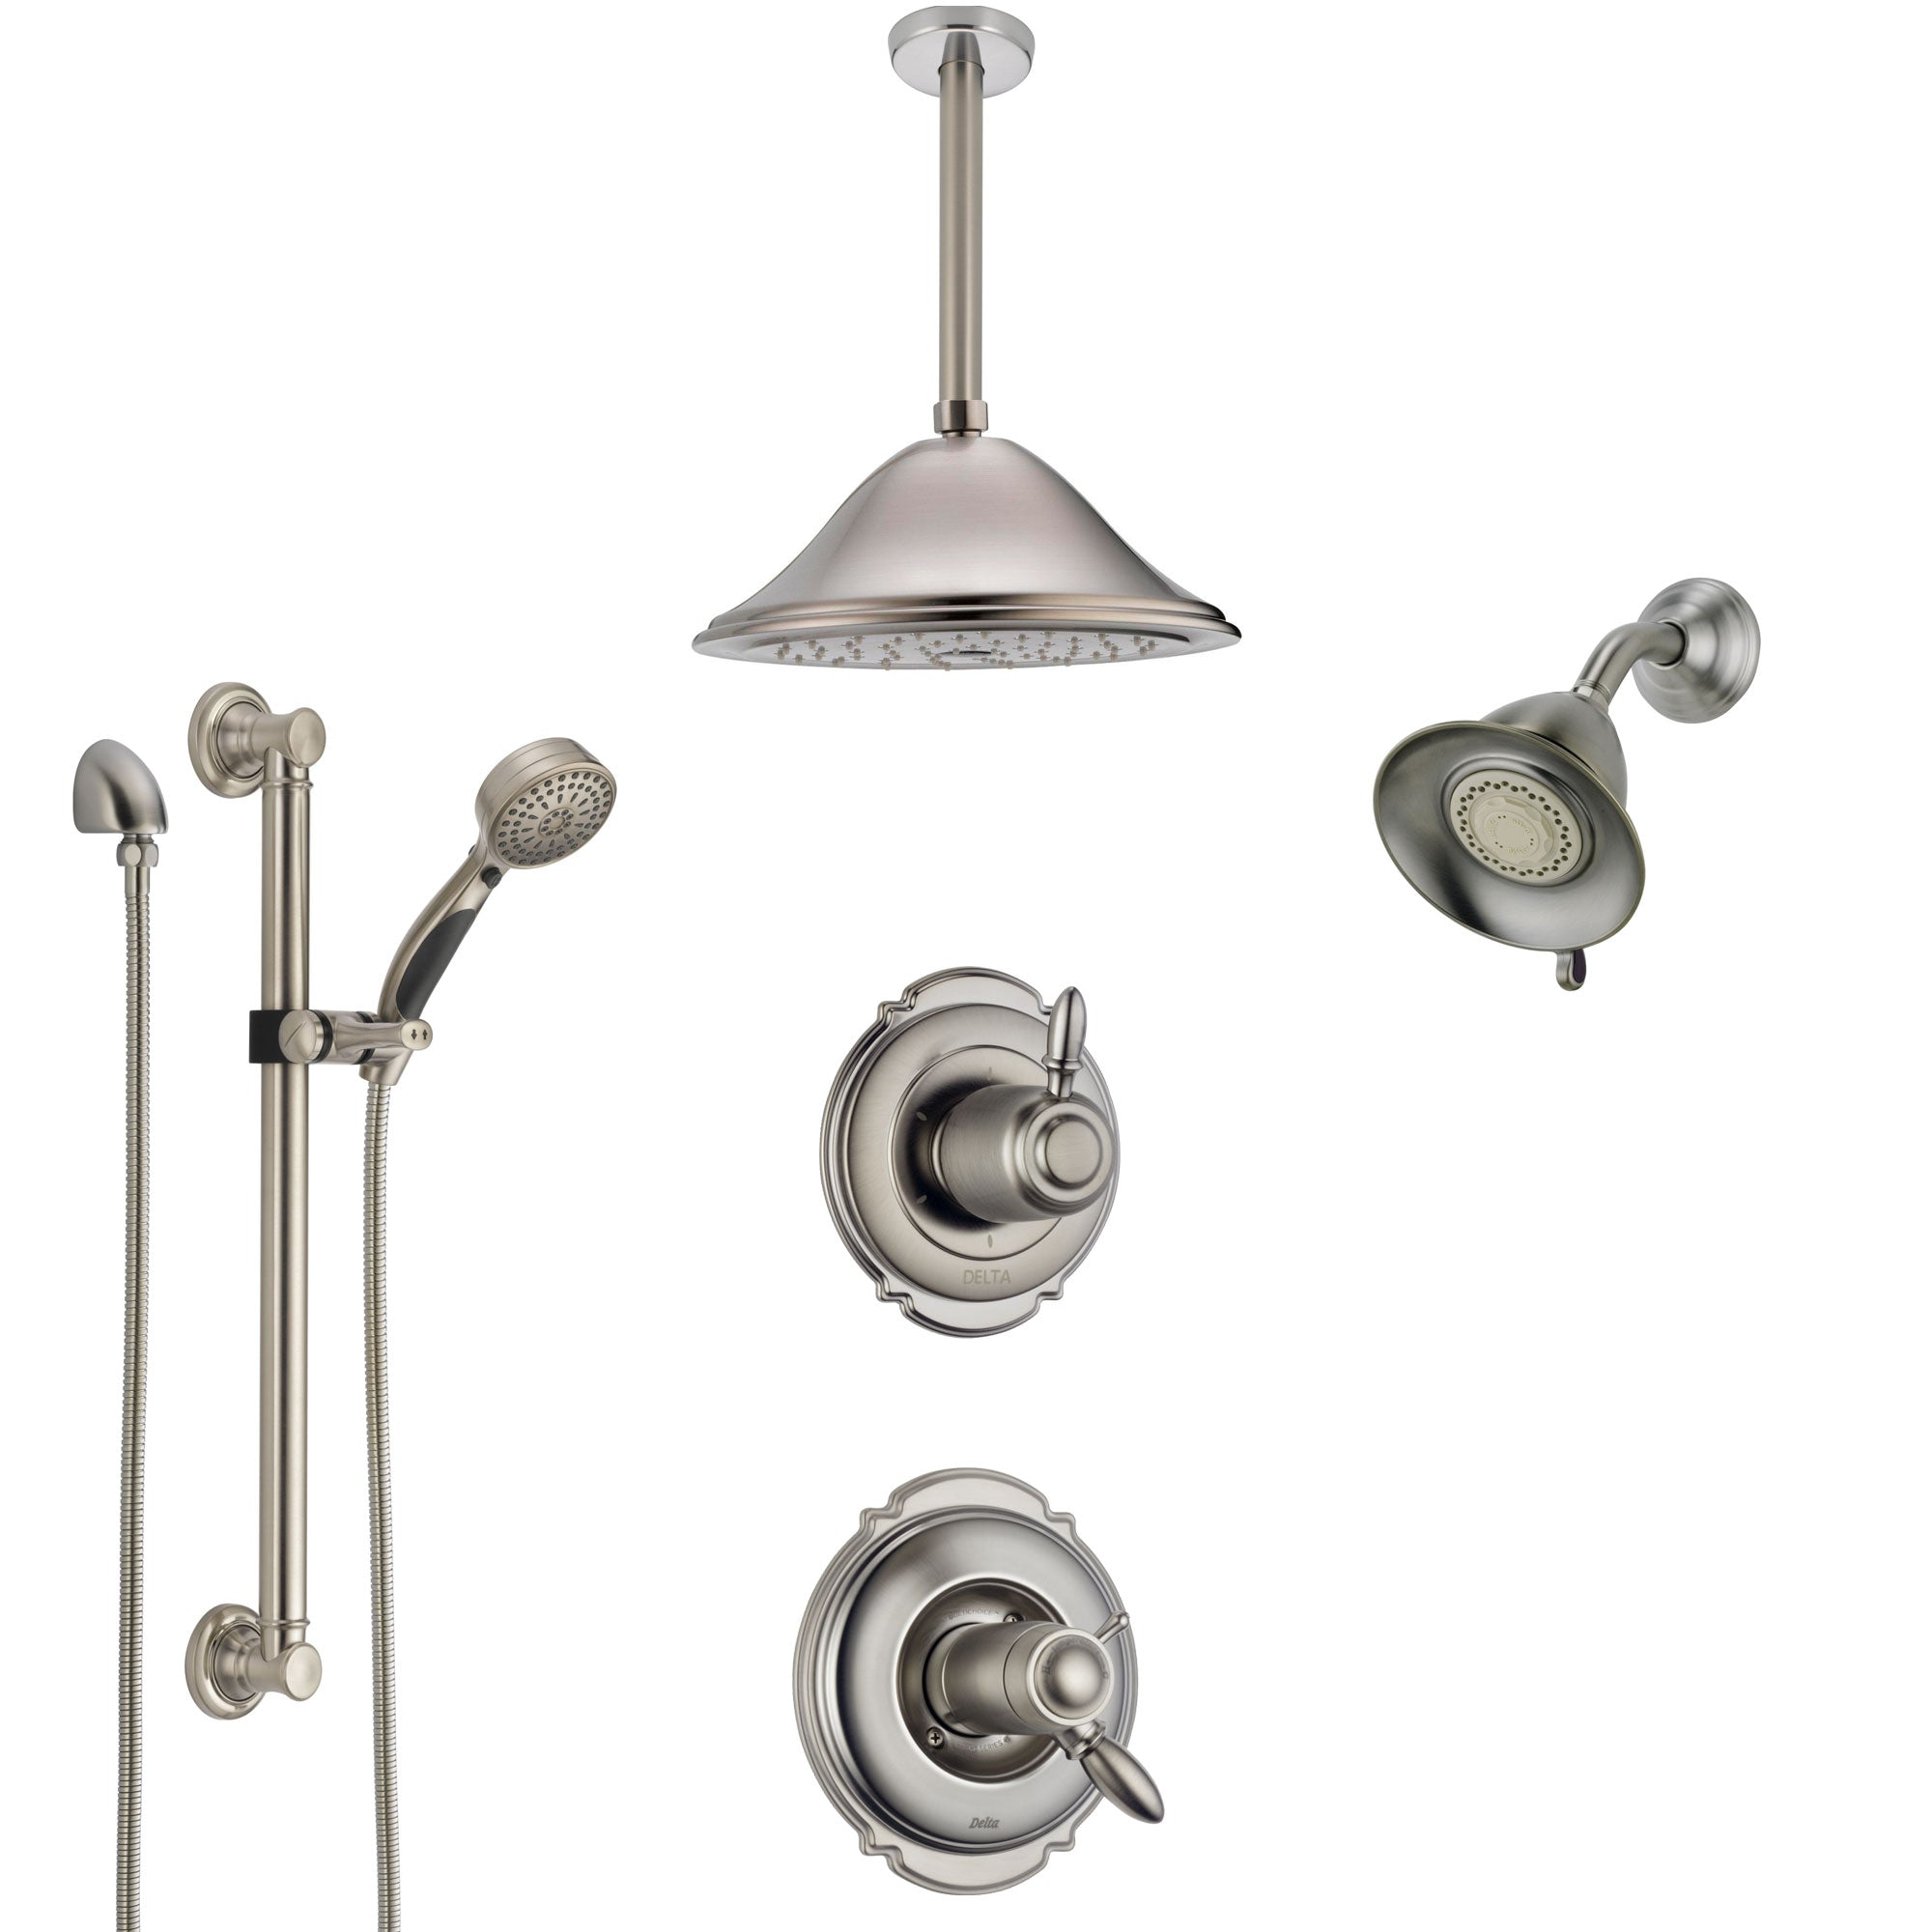 Delta Victorian Dual Thermostatic Control Stainless Steel Finish Shower System with Showerhead, Ceiling Showerhead, Grab Bar Hand Spray SS17T2552SS6